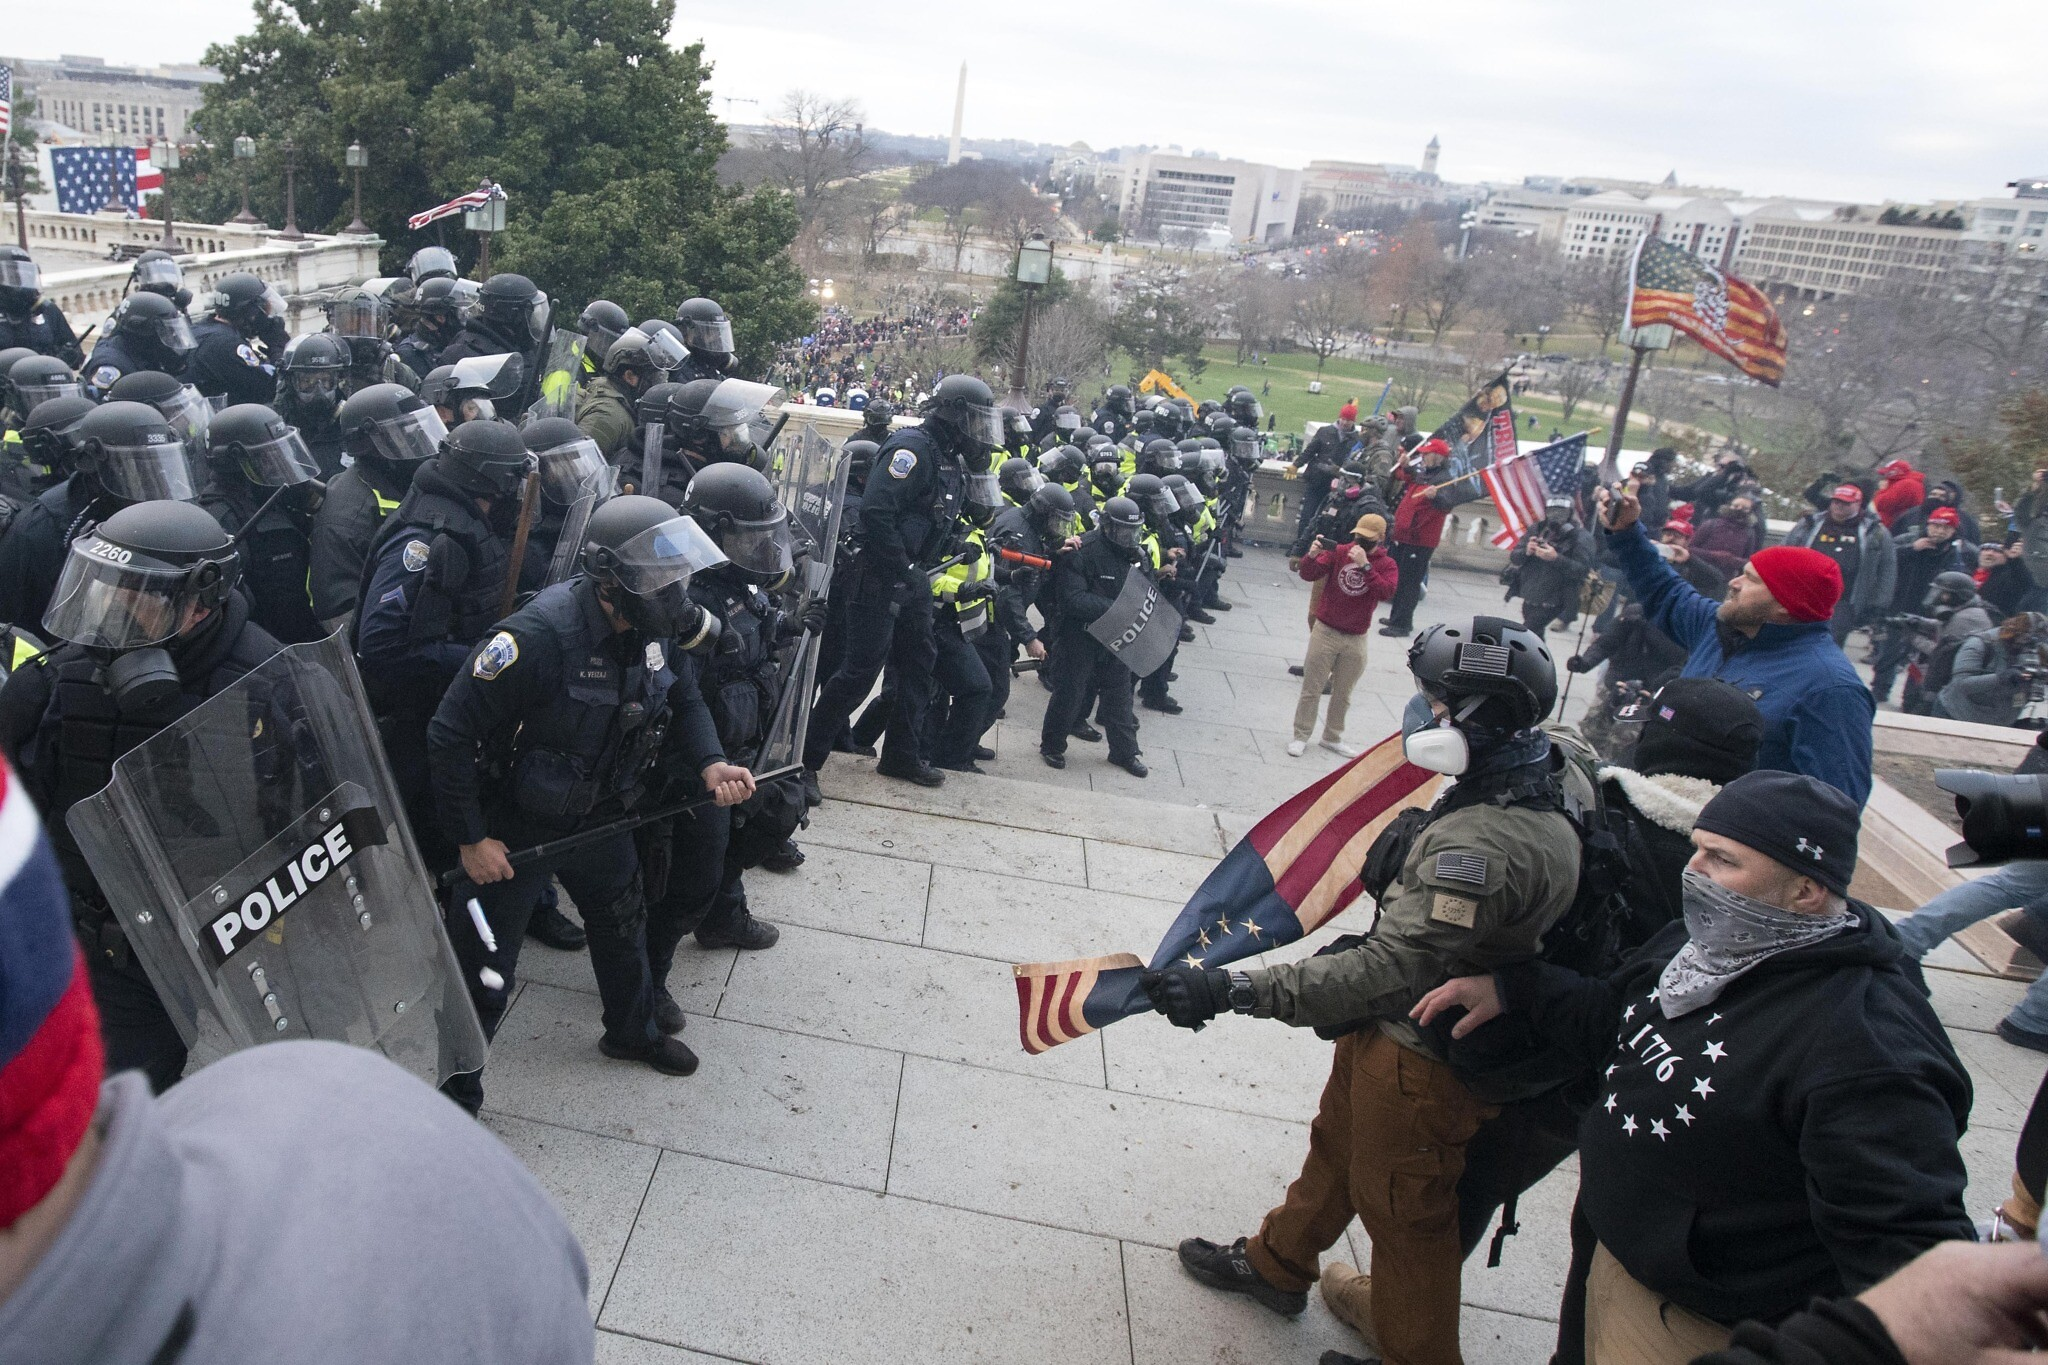 US Capitol Police push back demonstrators who were trying to enter the US Capitol on January 6, 2021, in Washington. (AP Photo/Jose Luis Magana)